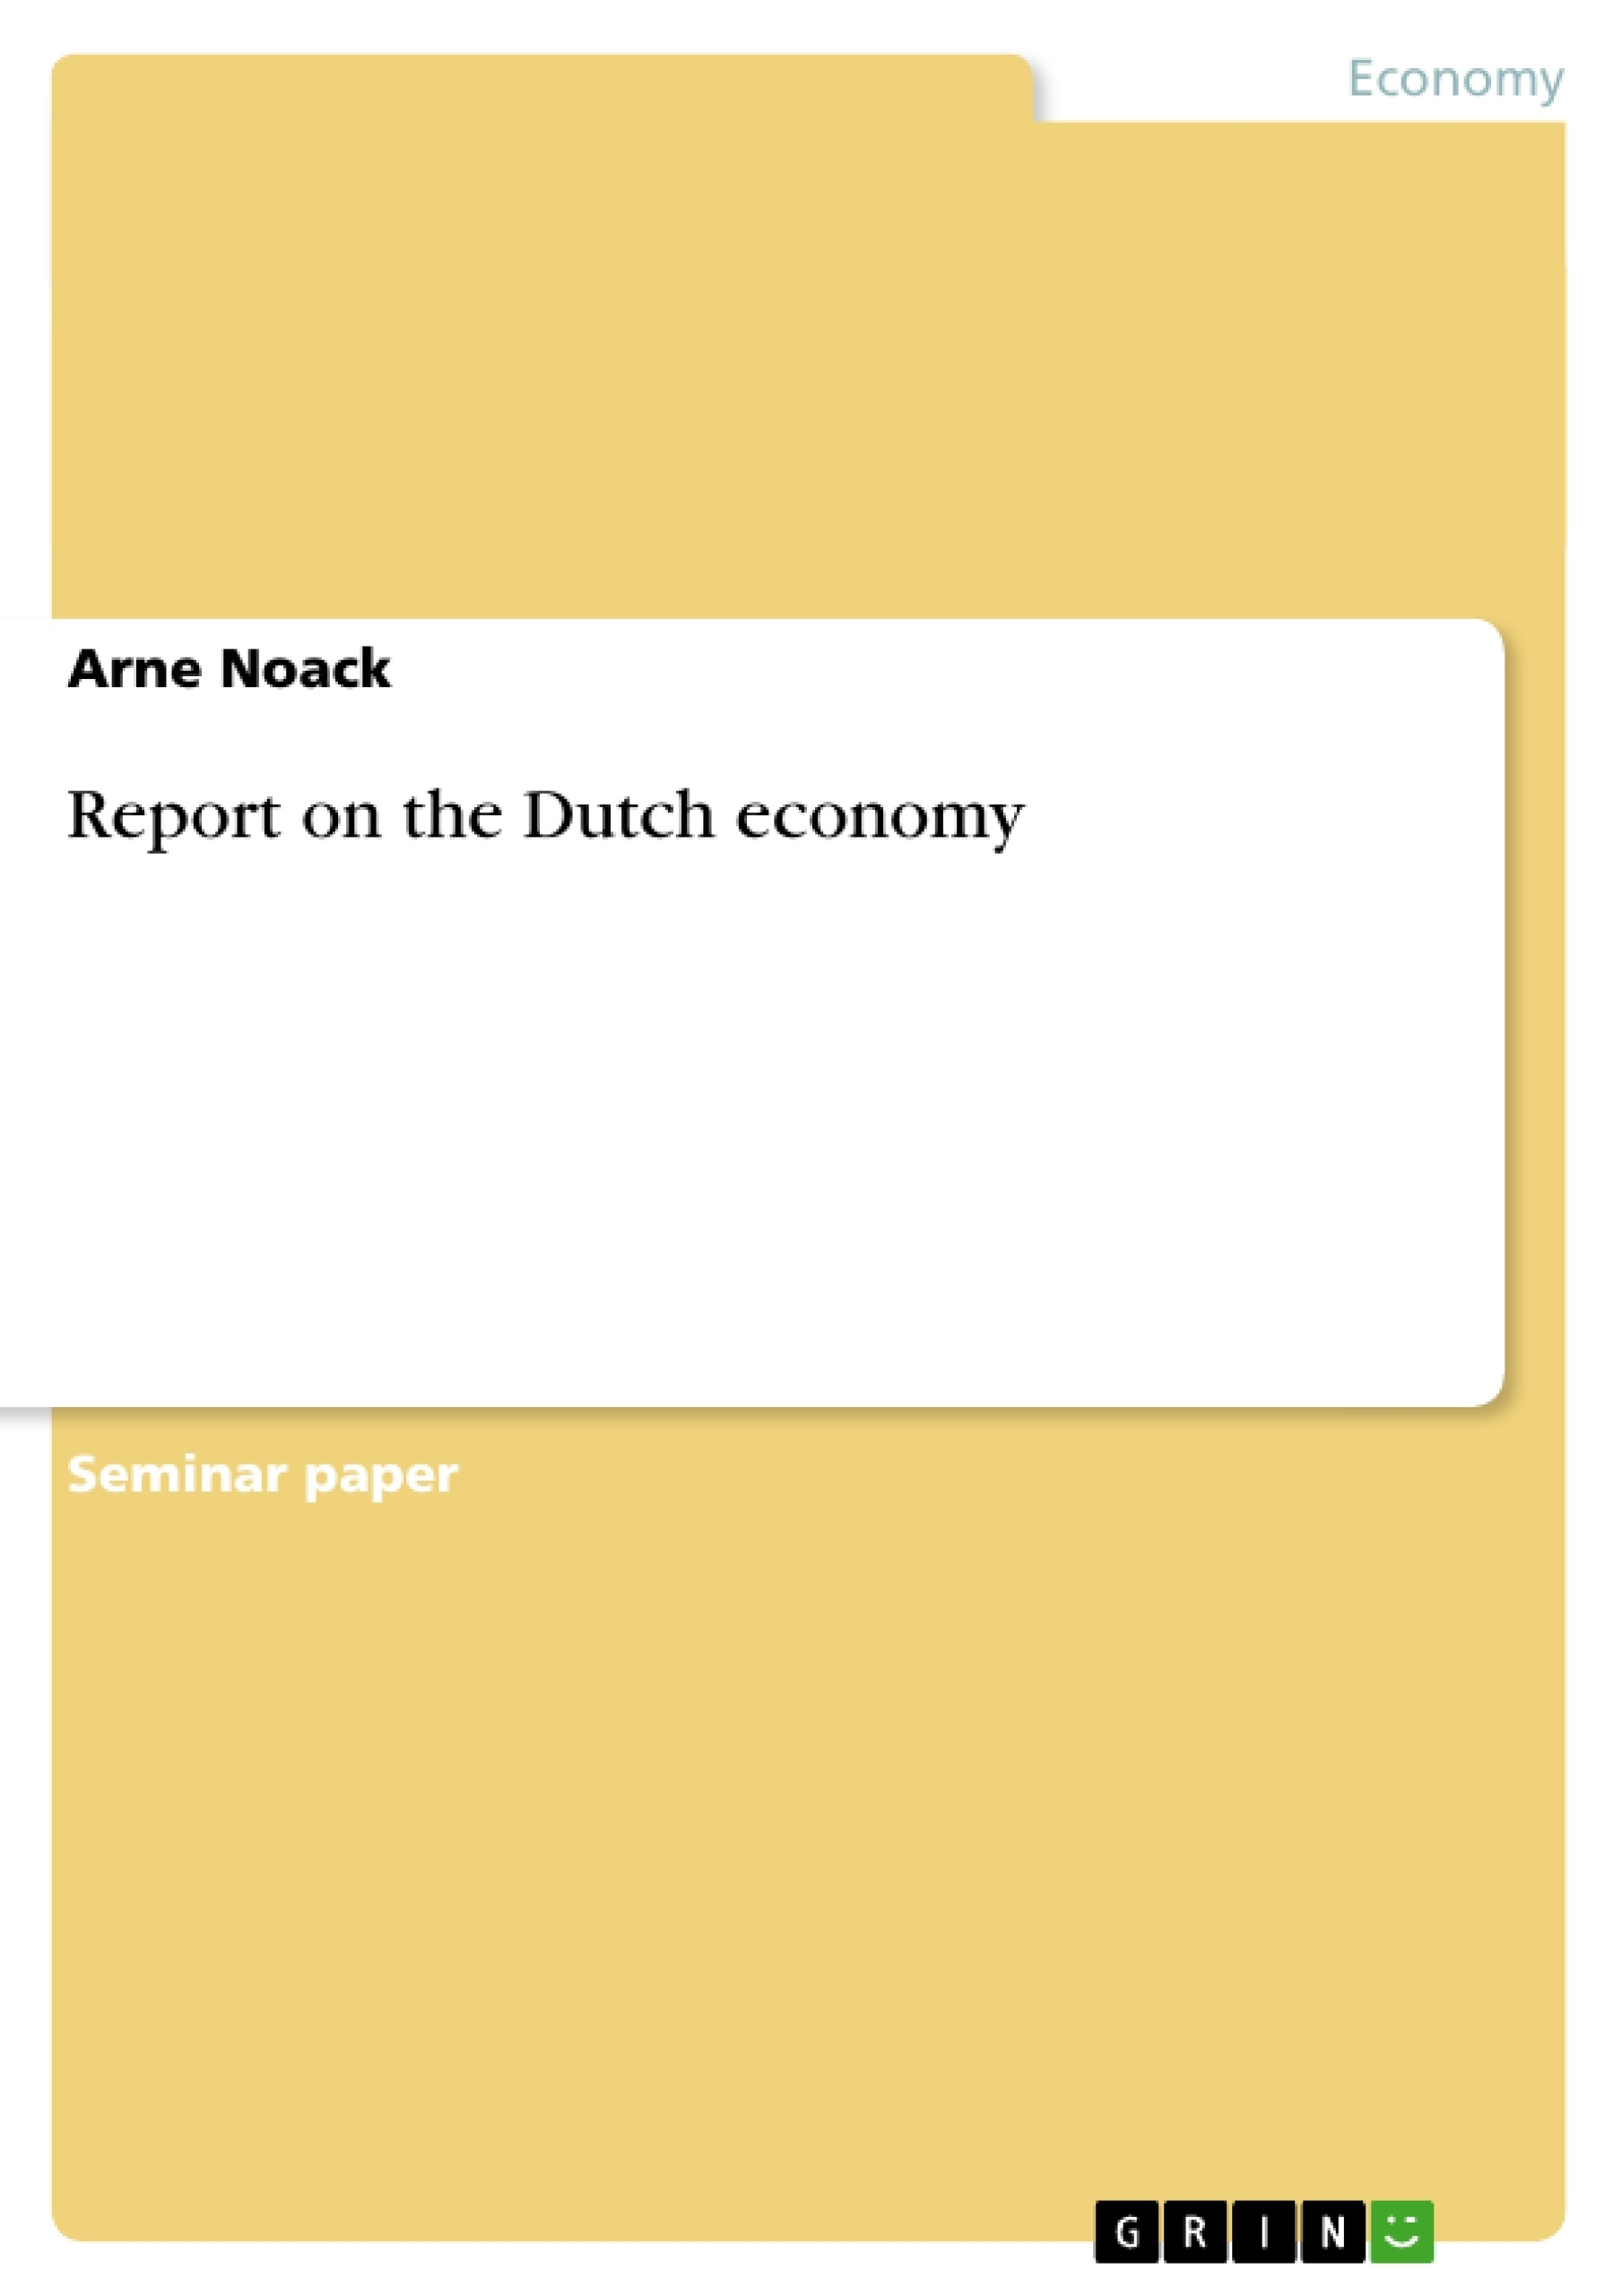 Title: Report on the Dutch economy